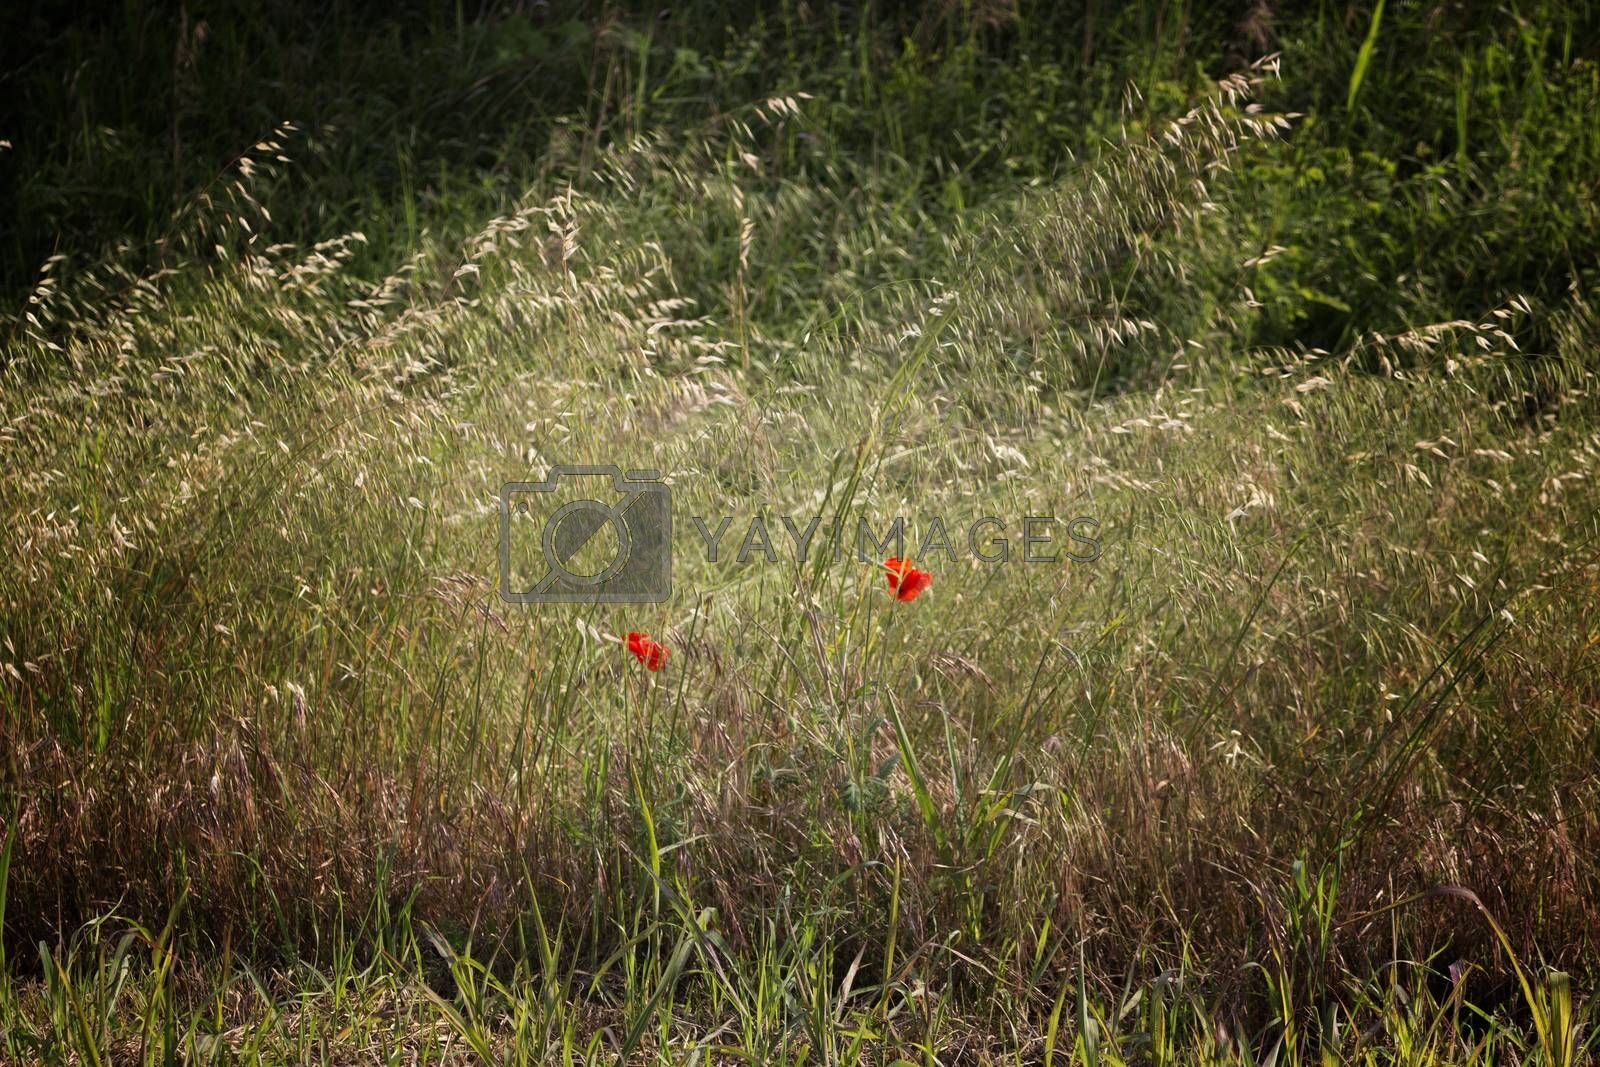 Red poppies on green weeds field in Italian countryside